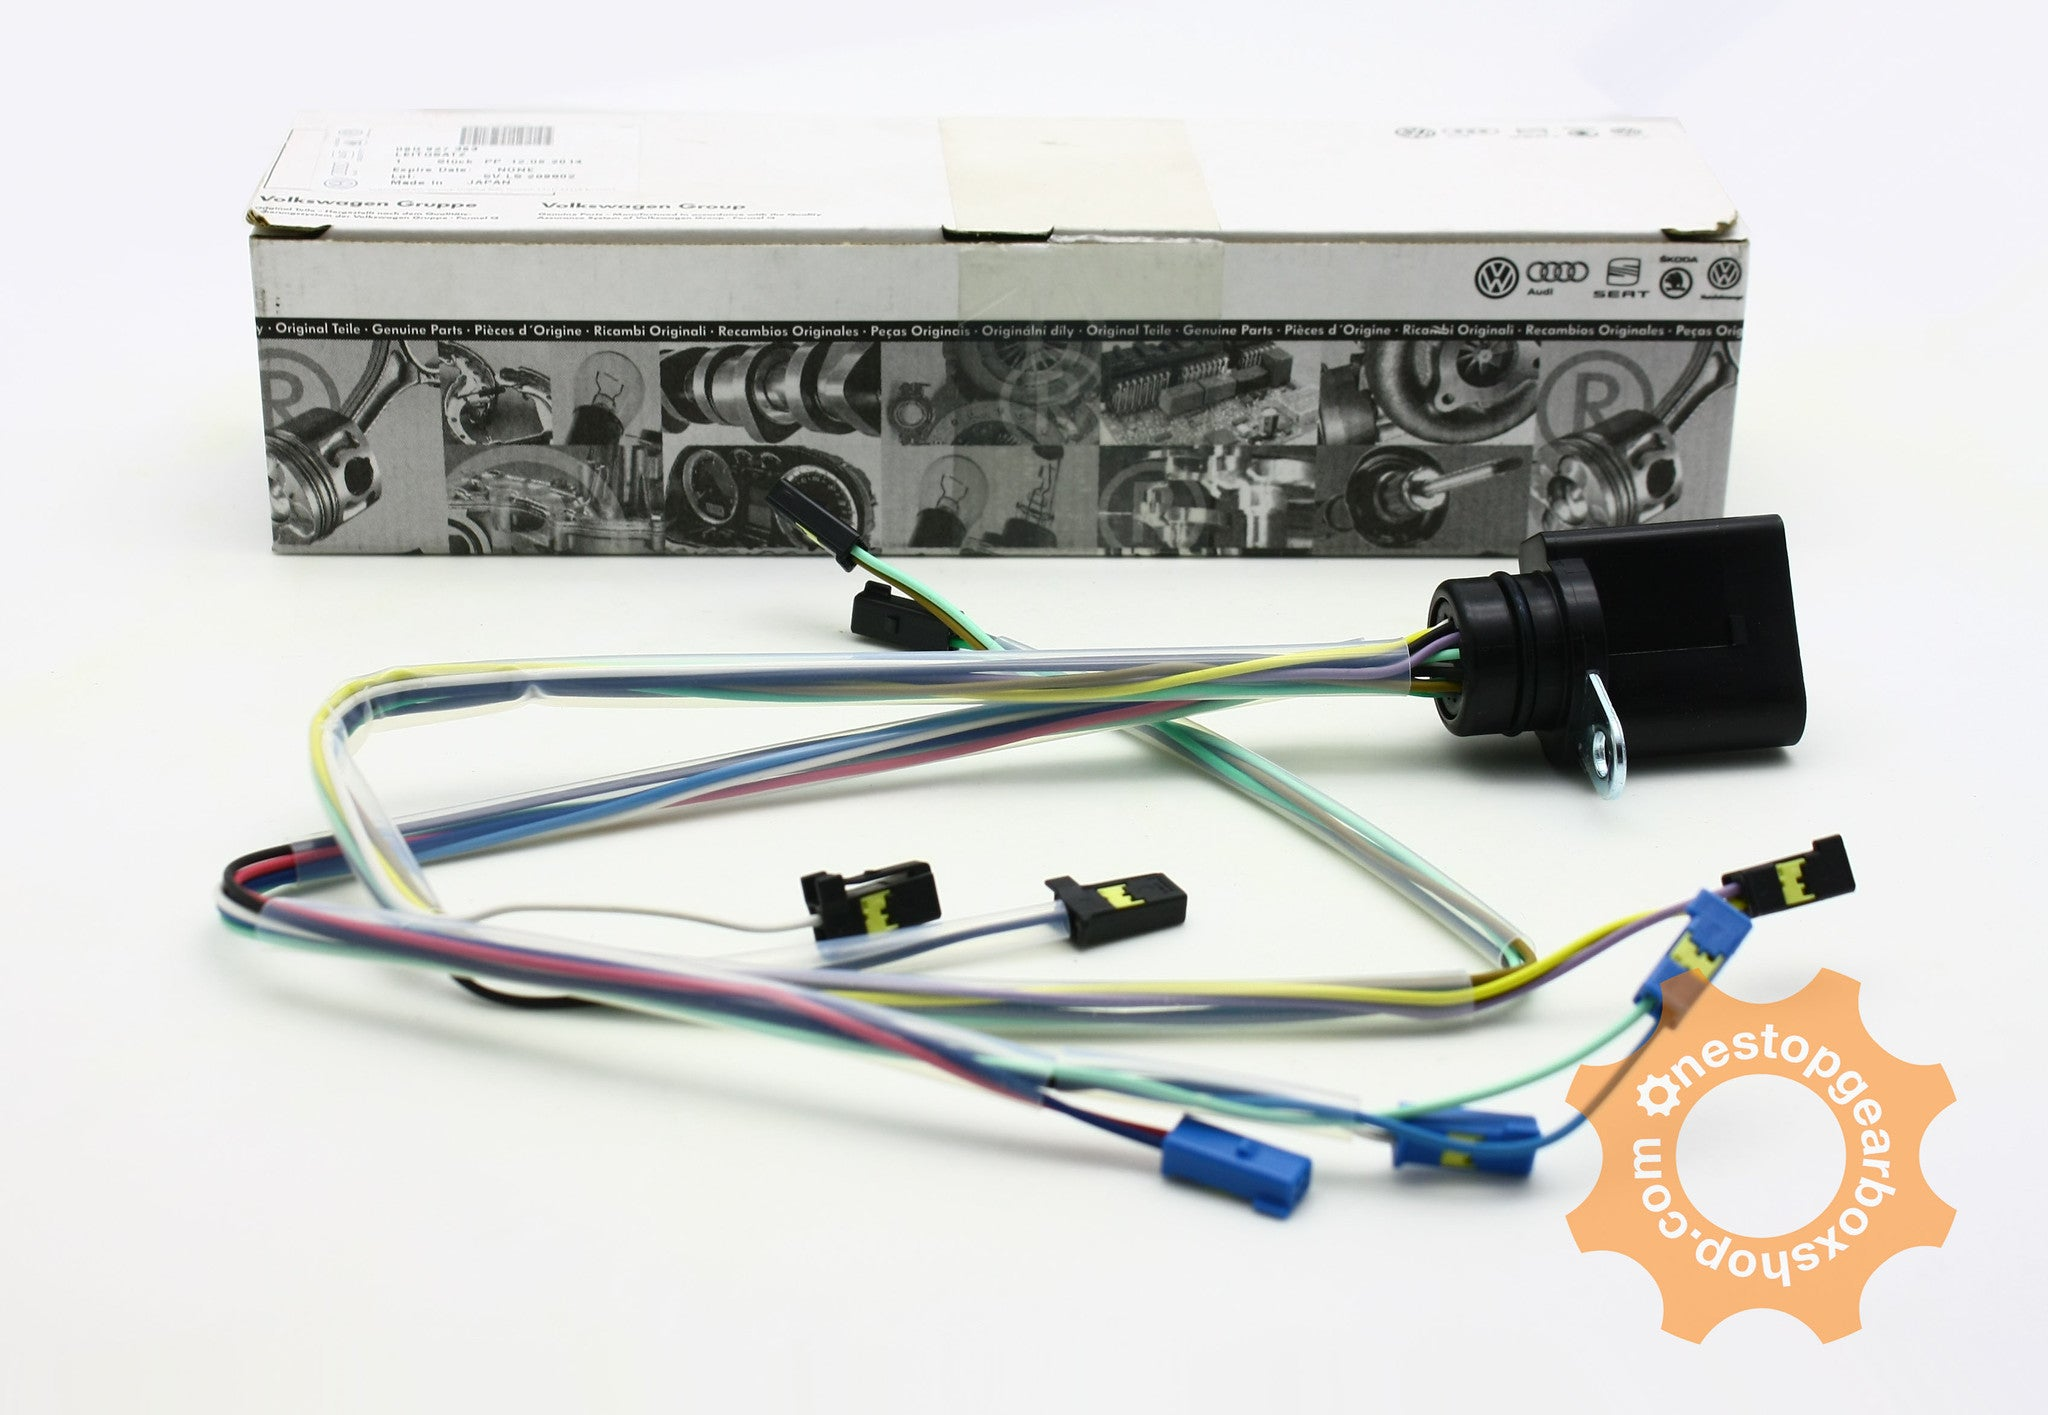 Vw 09g Tf60sn Automatic Gearbox Wiring Harness One Stop Shop Parts